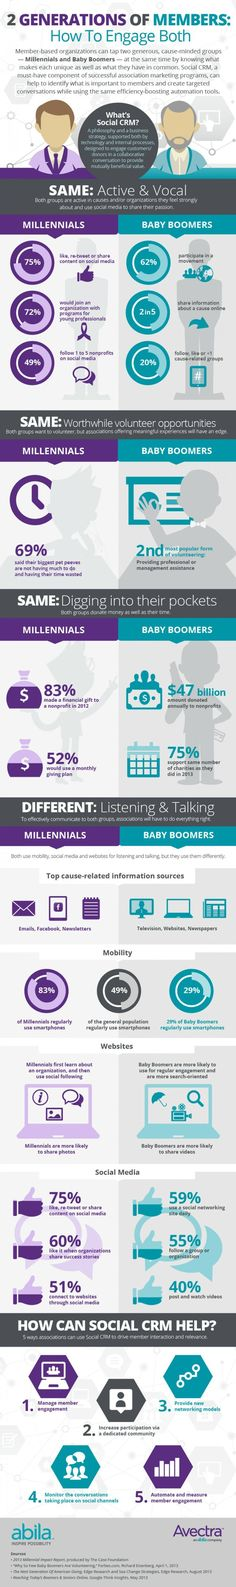 fundraising infographic & data Business infographic : Infographic: 2 Generations of Members: How To Engage Both. Inbound Marketing, Business Marketing, Content Marketing, Online Marketing, Social Media Marketing, Digital Marketing, Business Infographics, Online Business, Los Millennials